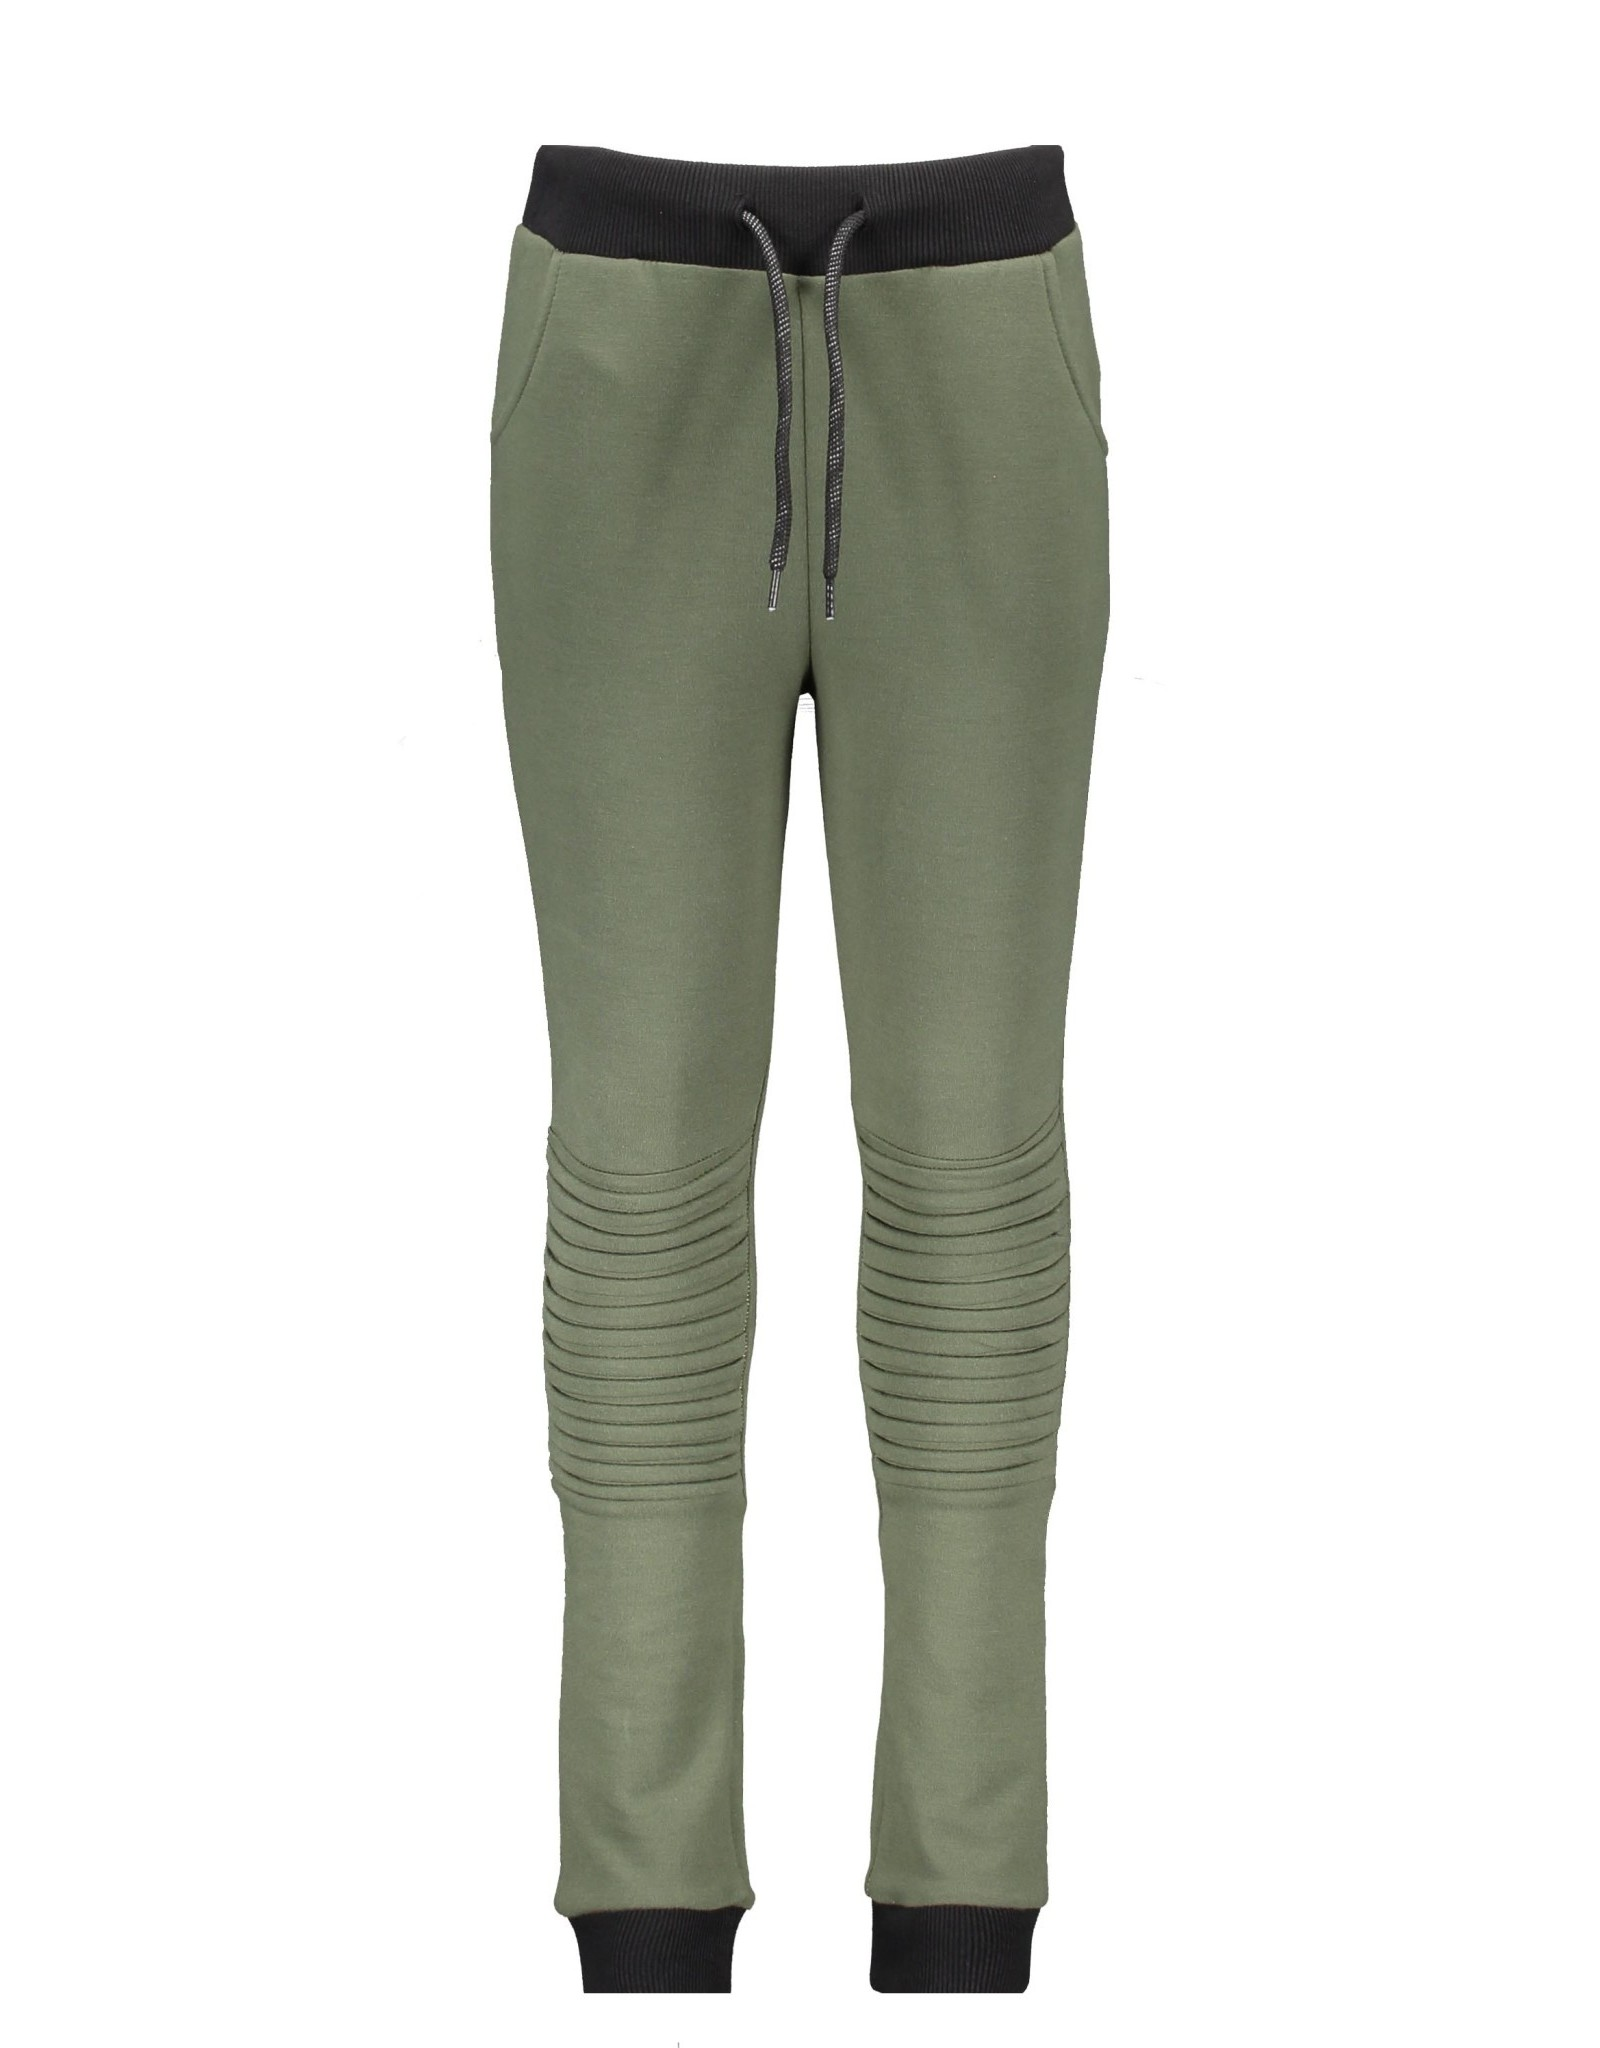 B-nosy Boys sweat pants with folded knee detail and printed zipper 351Army green